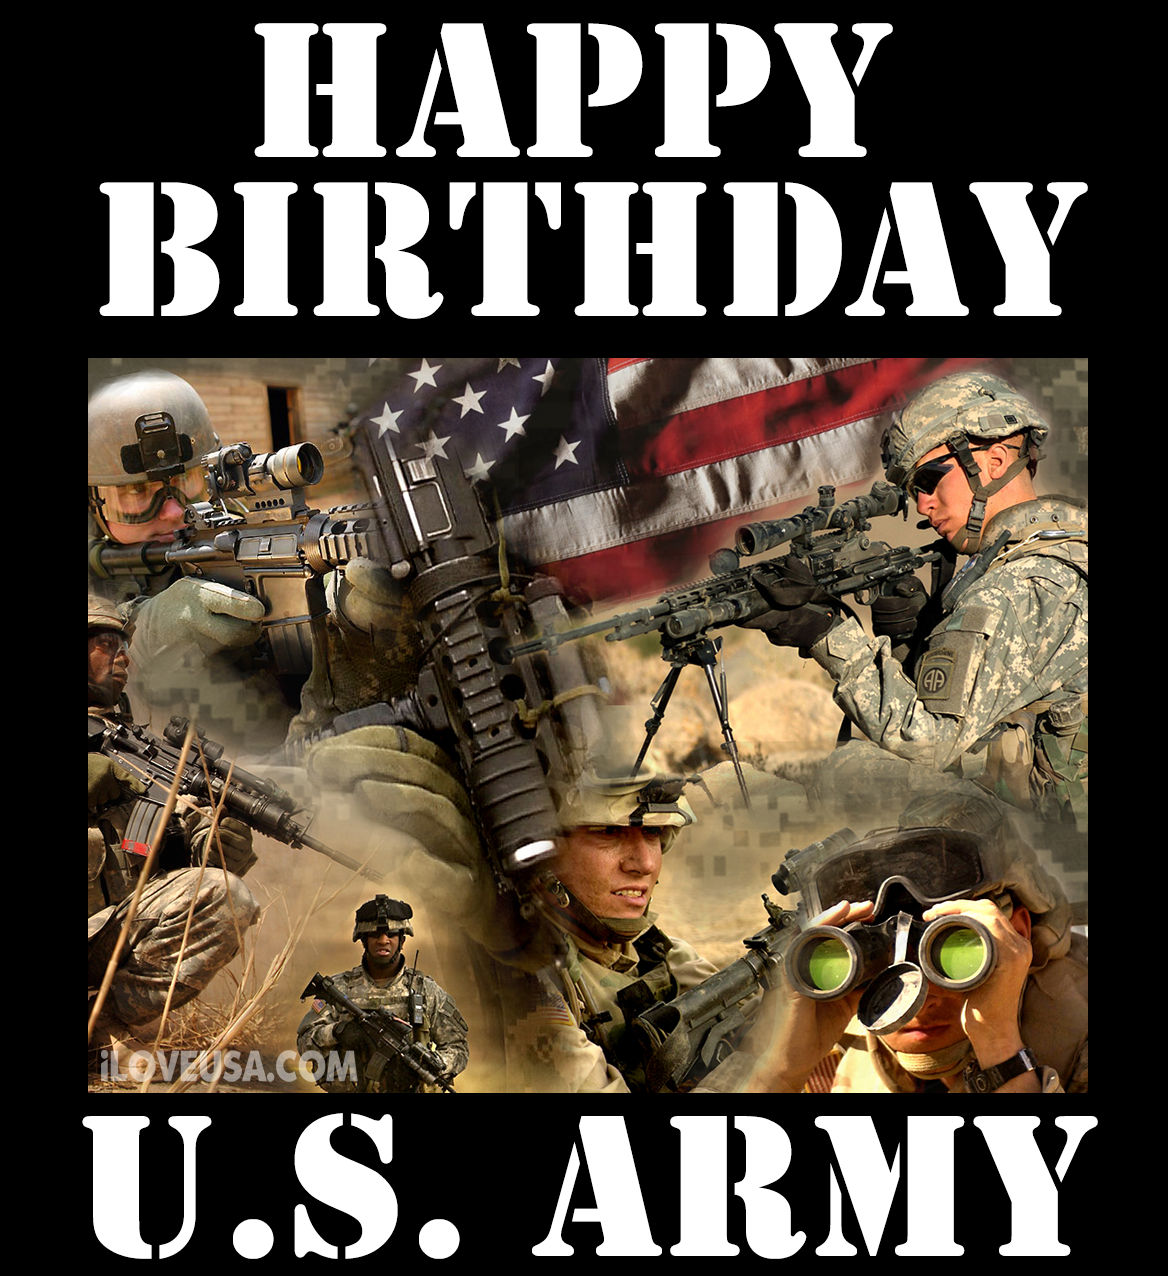 The U.S. Army Has Served This Great Country For 239 Years